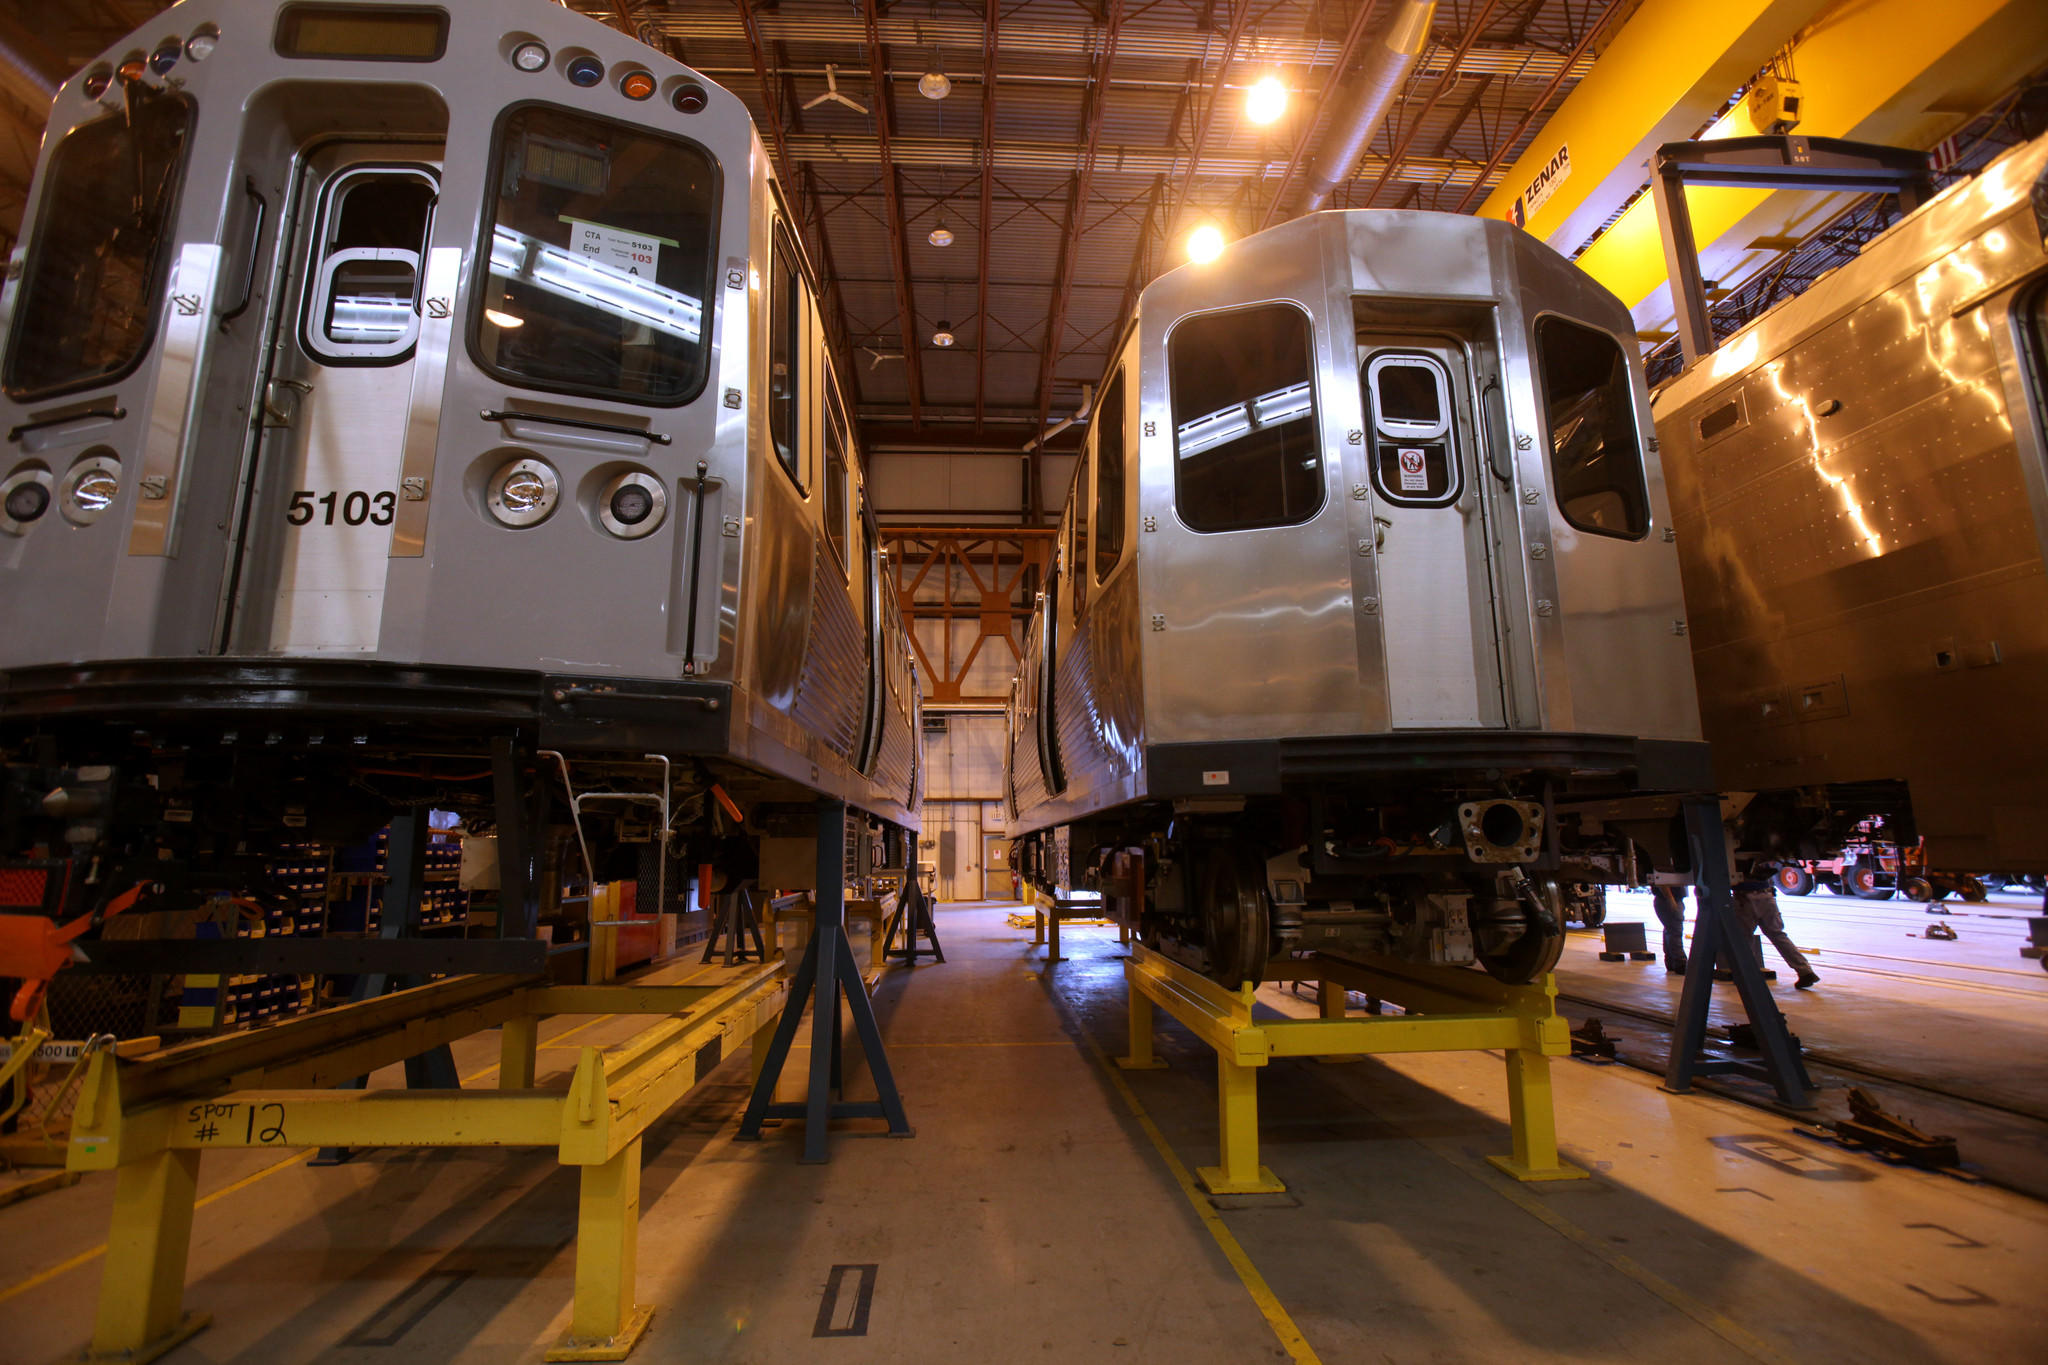 The Bombardier factory in Plattsburgh N.Y. manufacturing rail cars for the CTA.